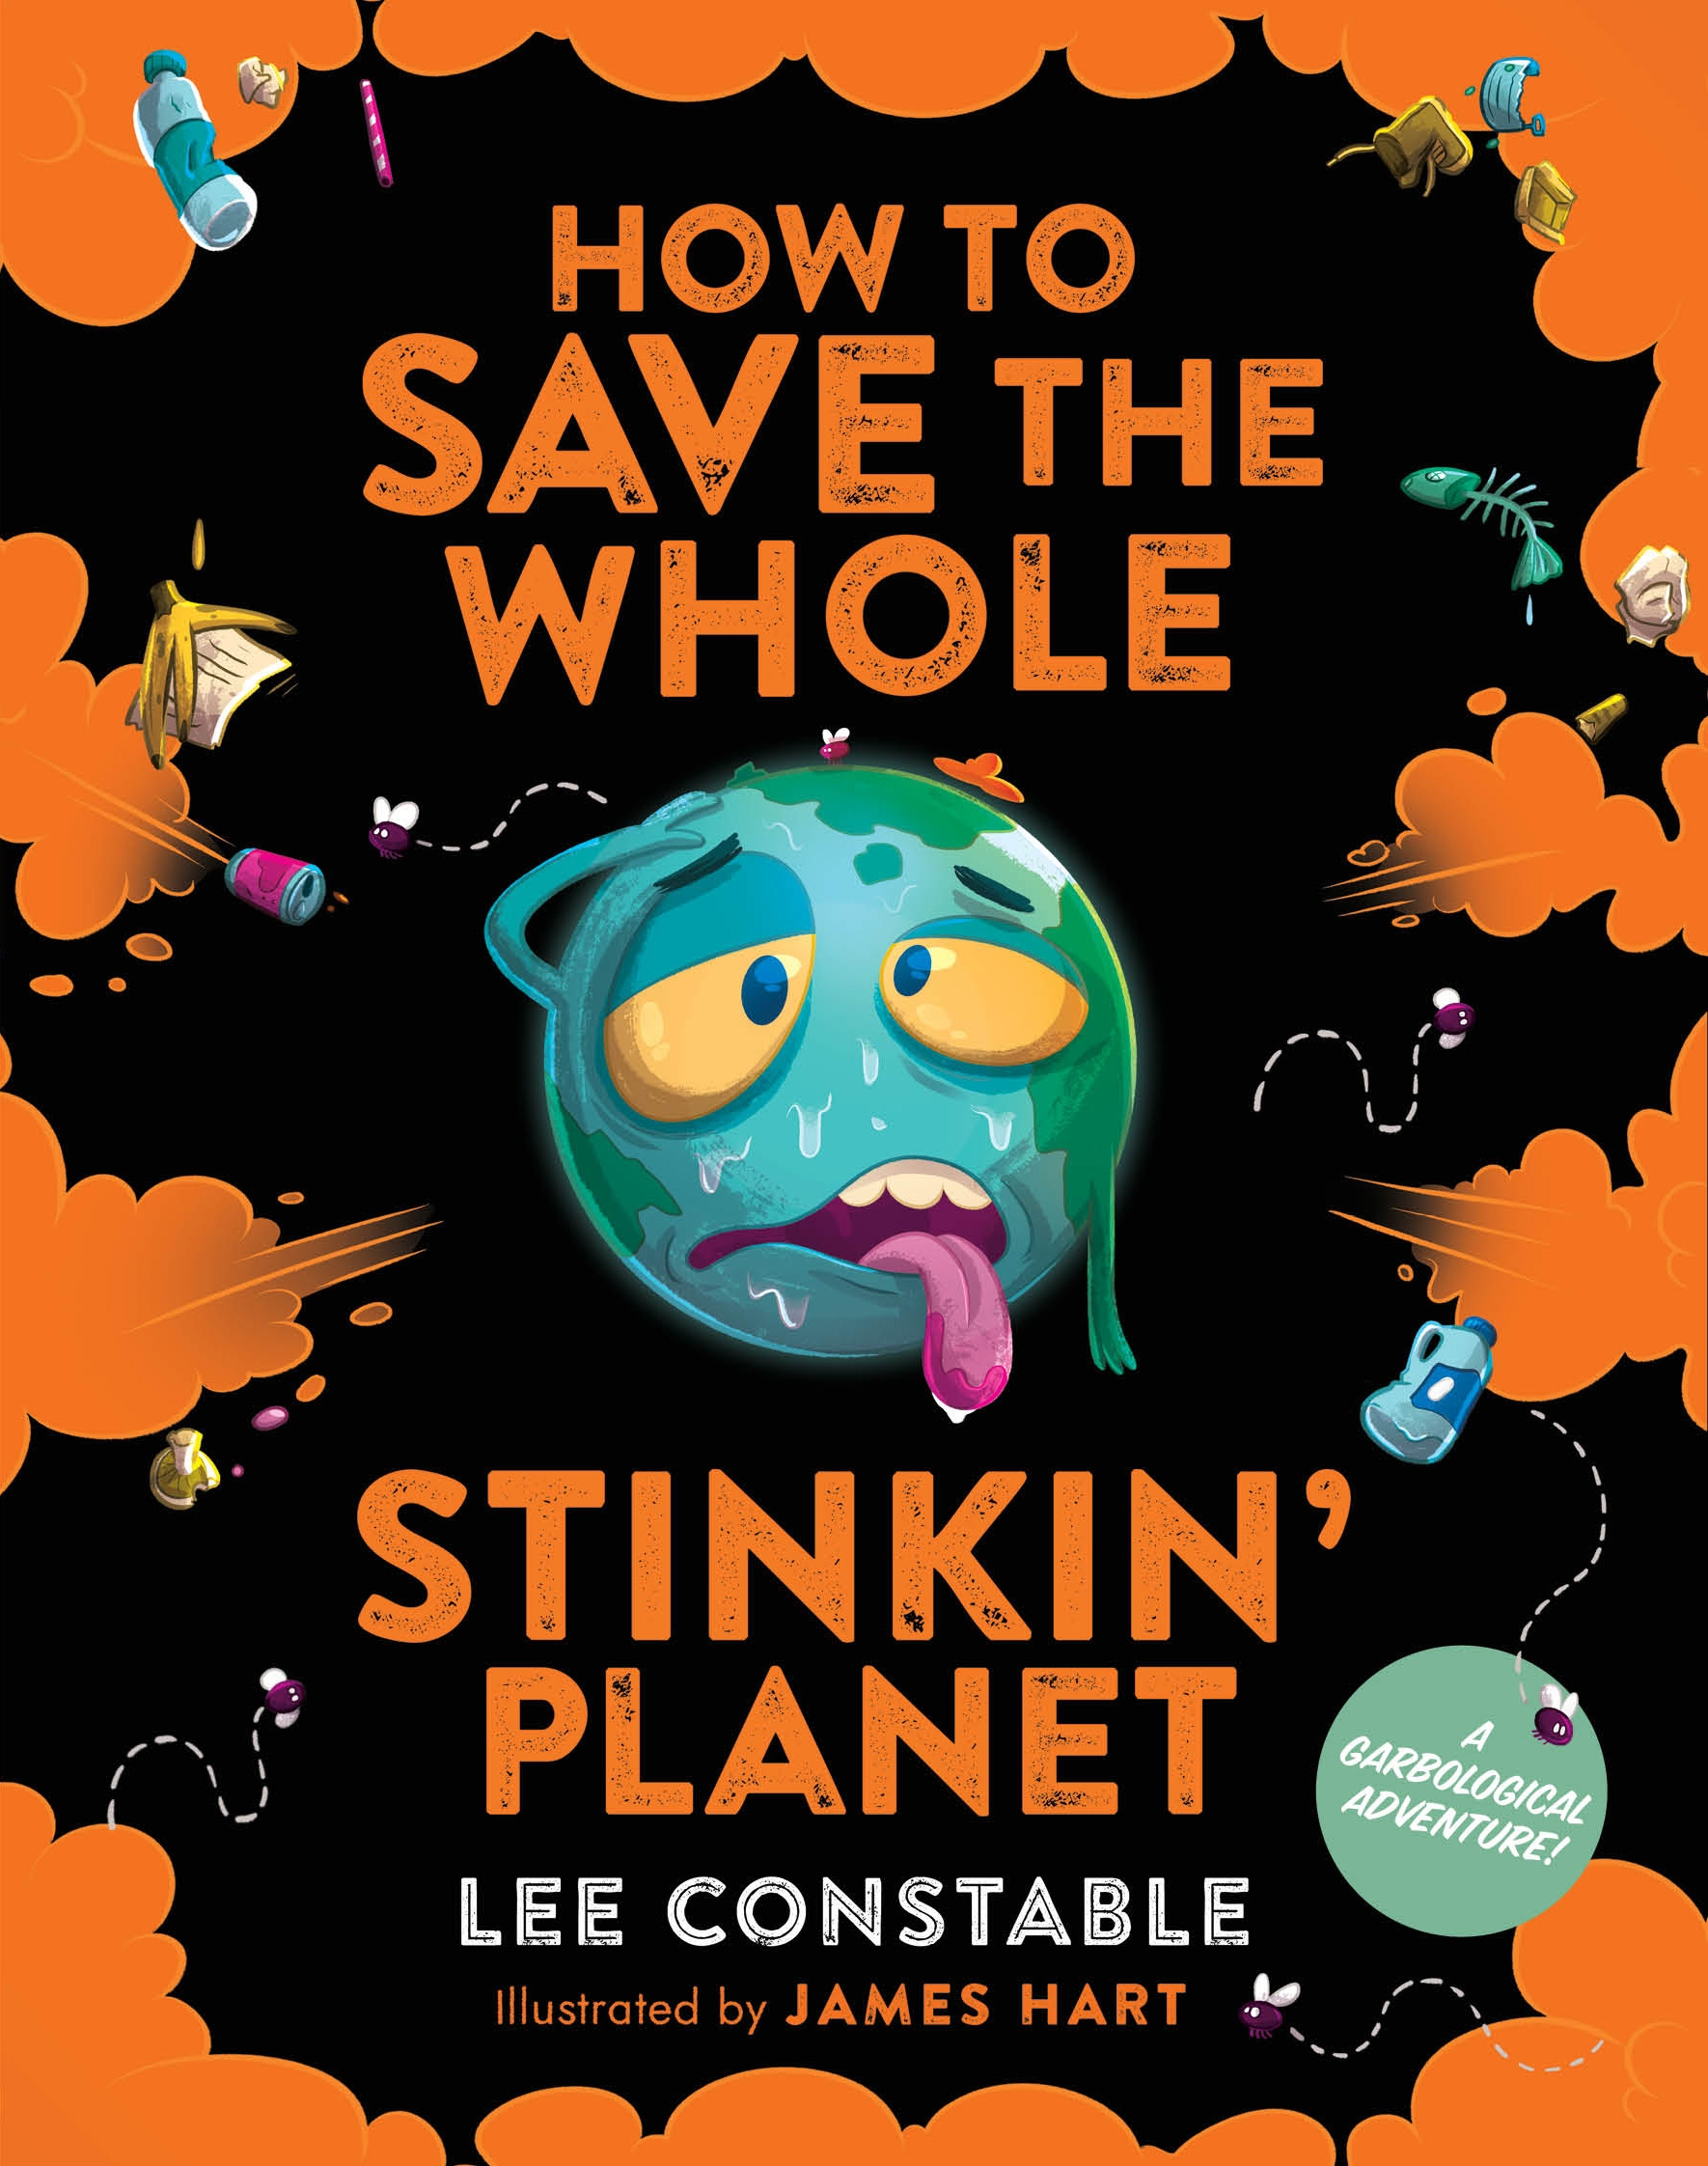 How To Save The Whole Stinkin Planet By Lee Constable